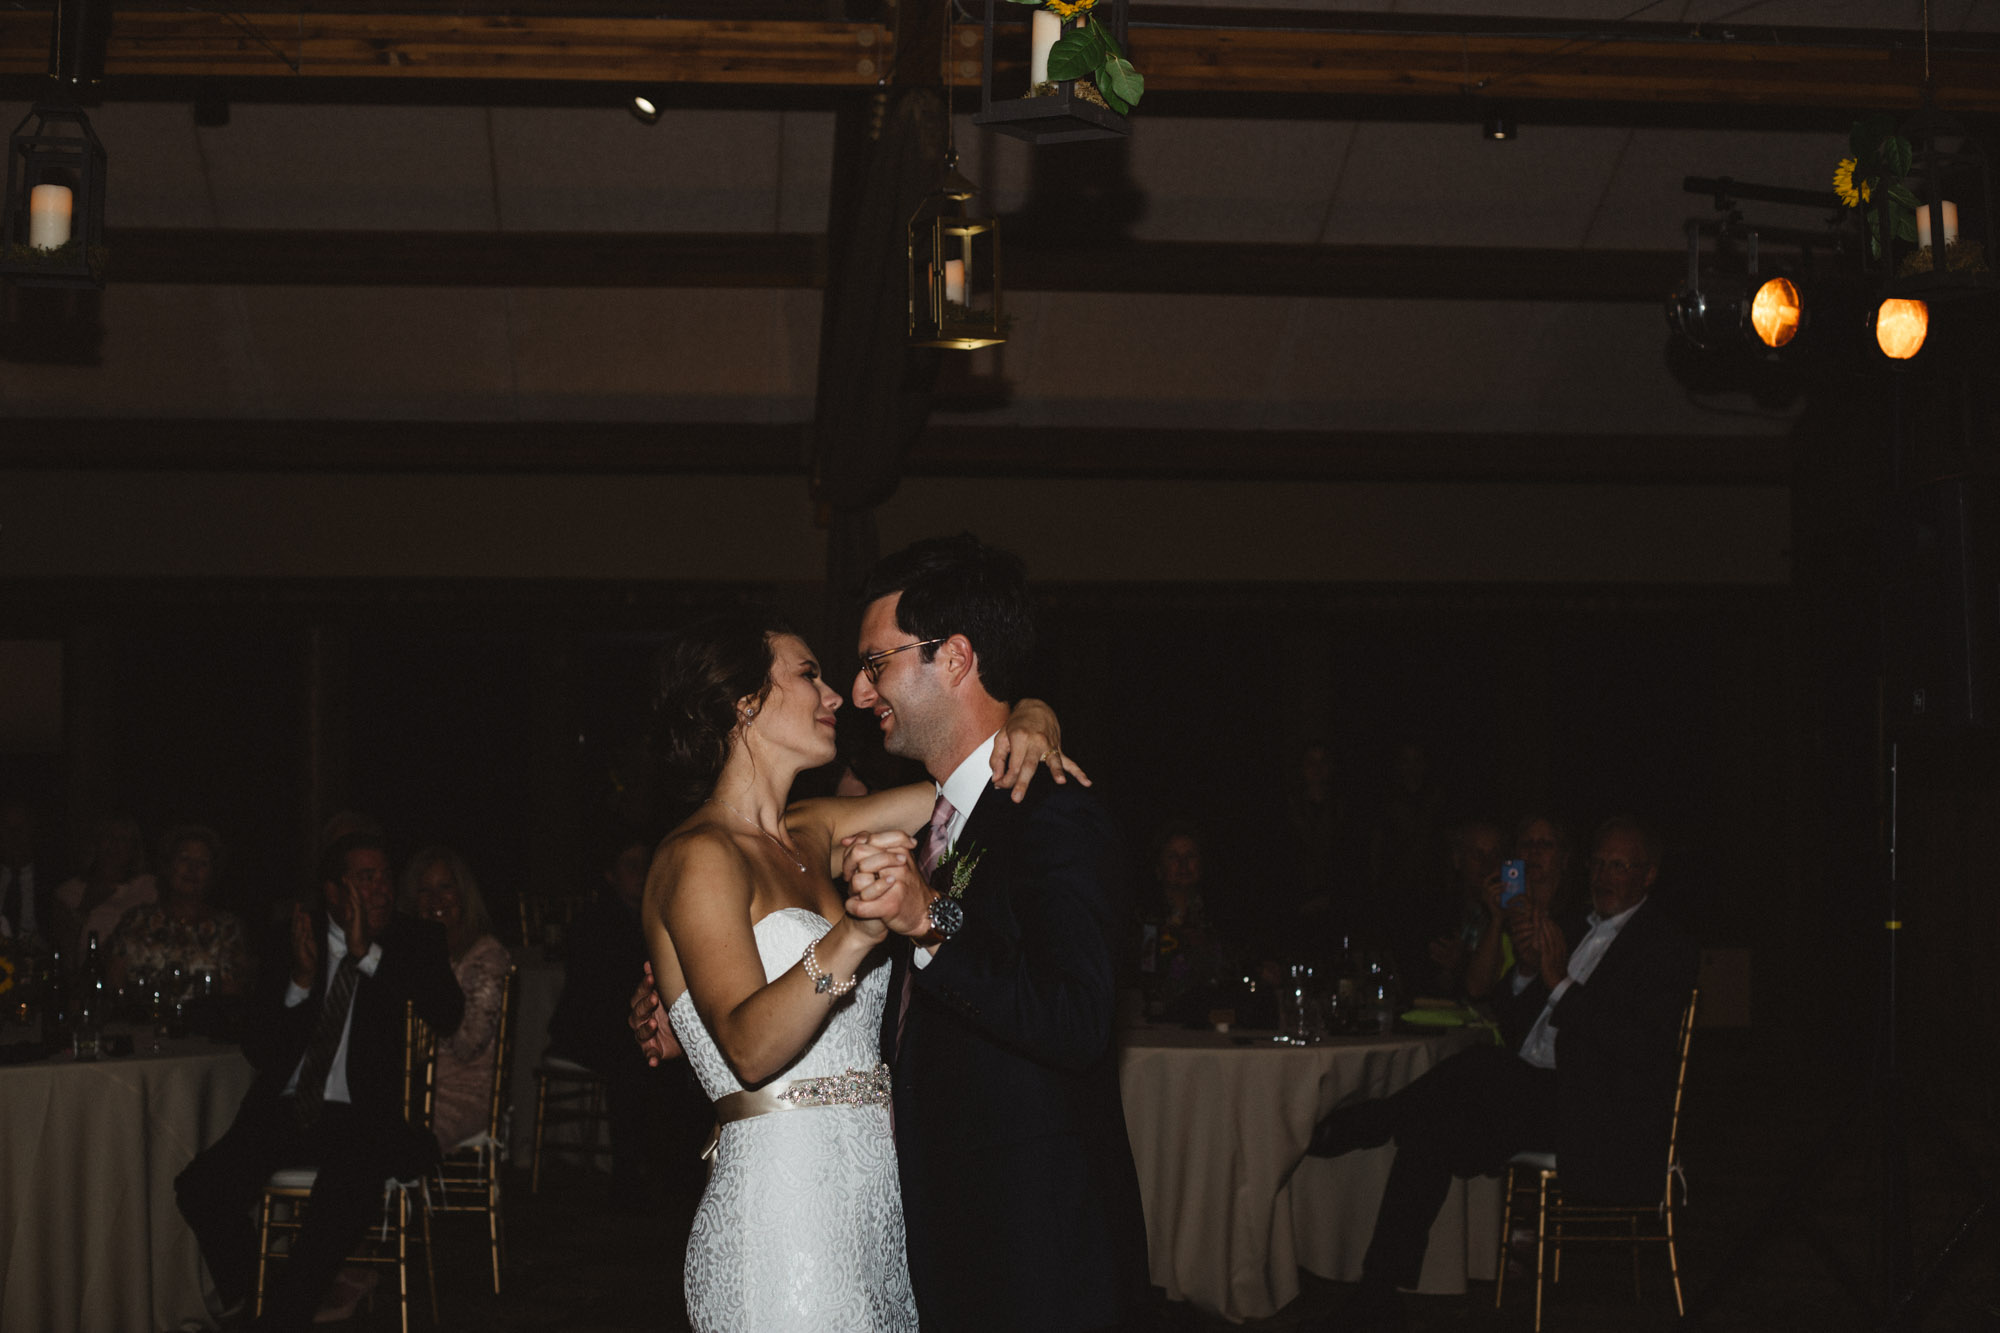 Bride and groom first dance at Grand View Lodge. Wedding photography by Britt DeZeeuw.